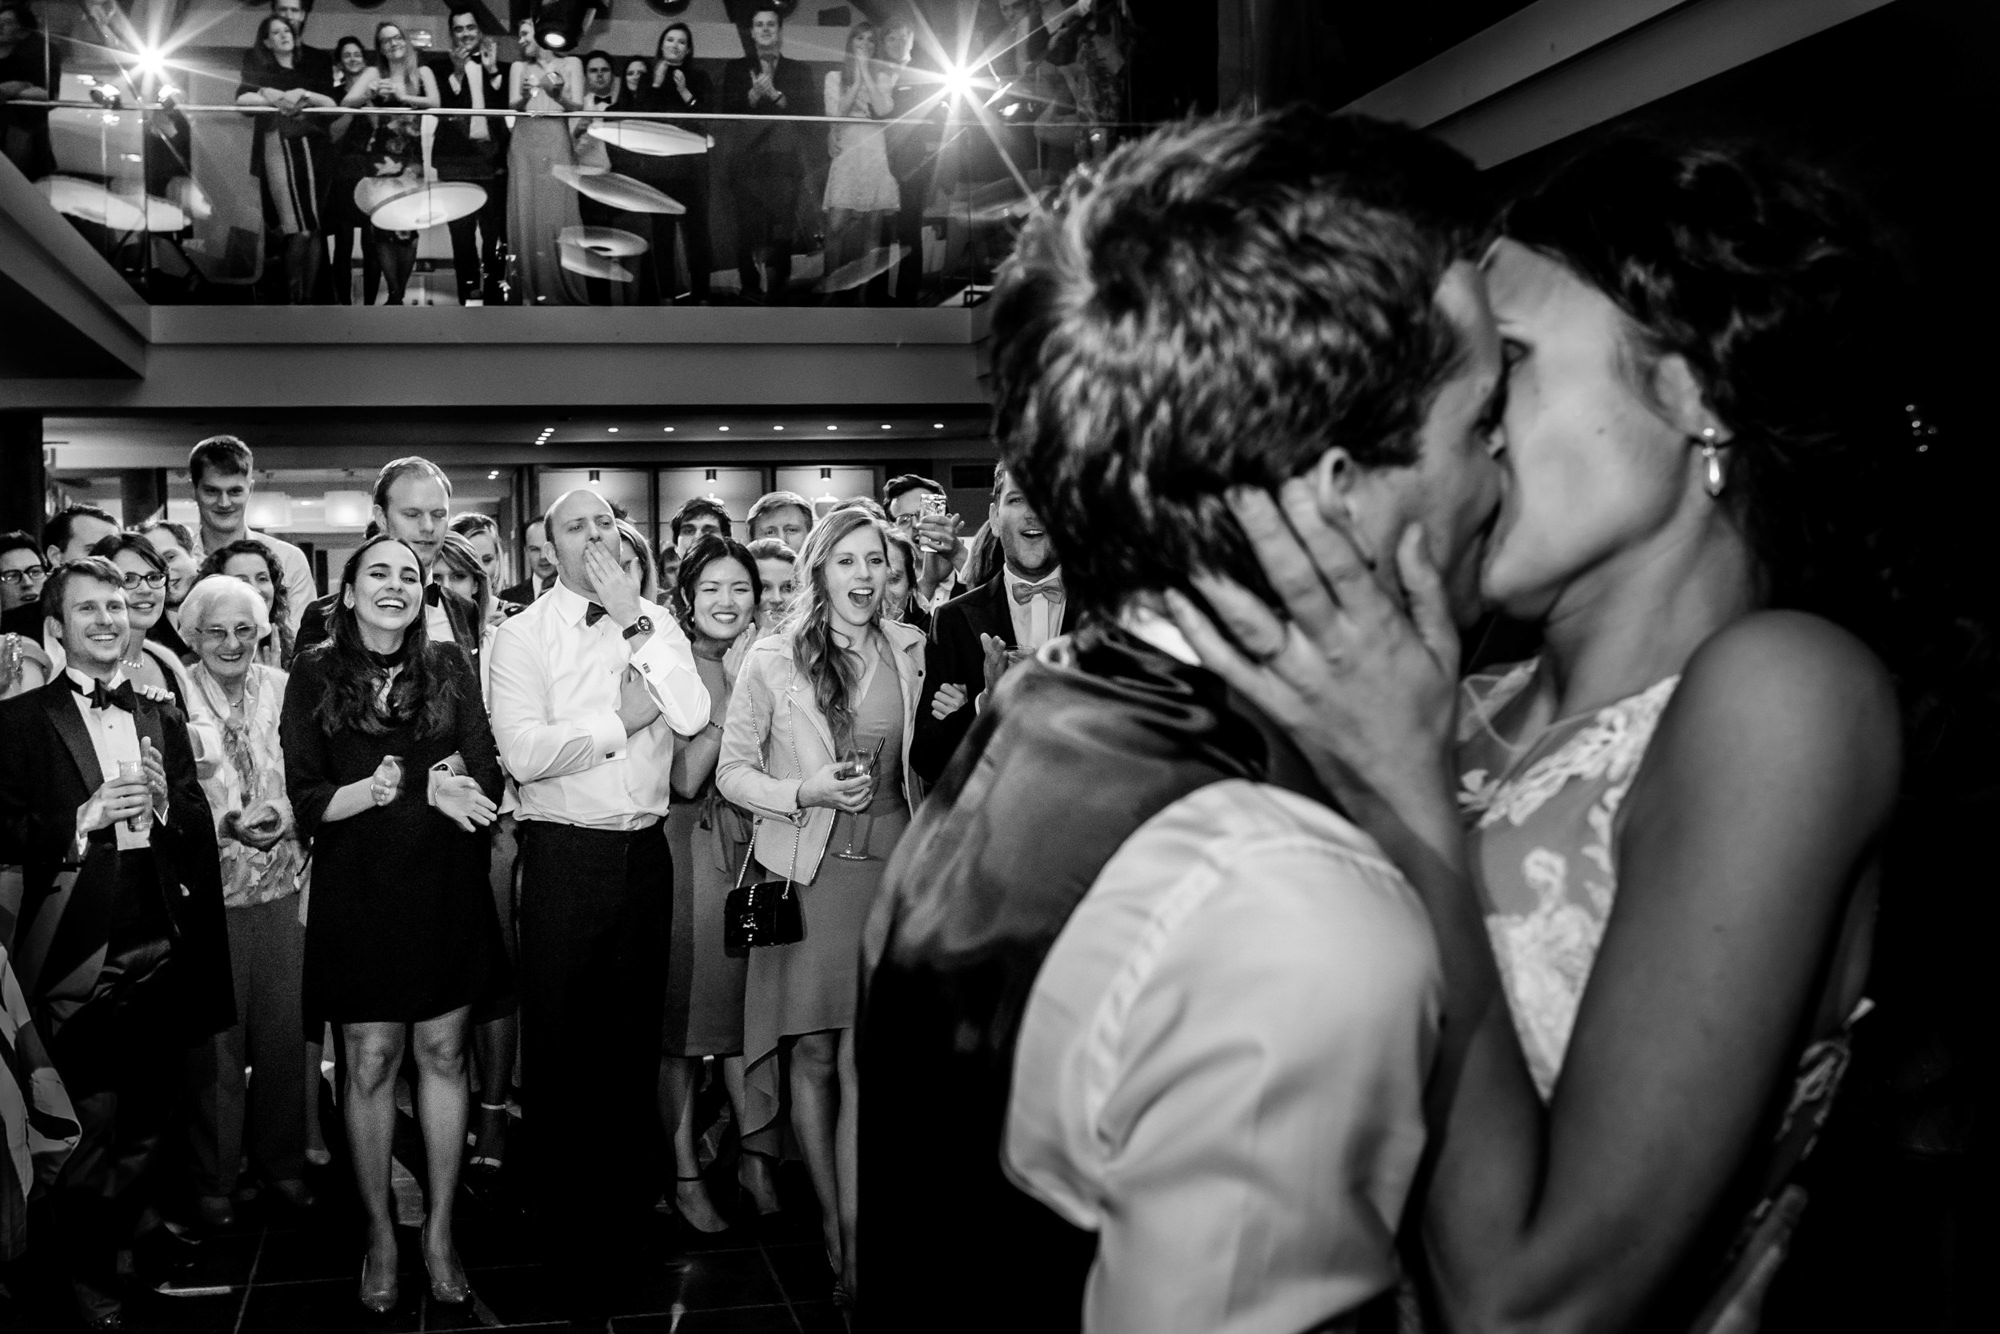 Bride and groom kiss while guests cheer - photo by Philippe Swiggers